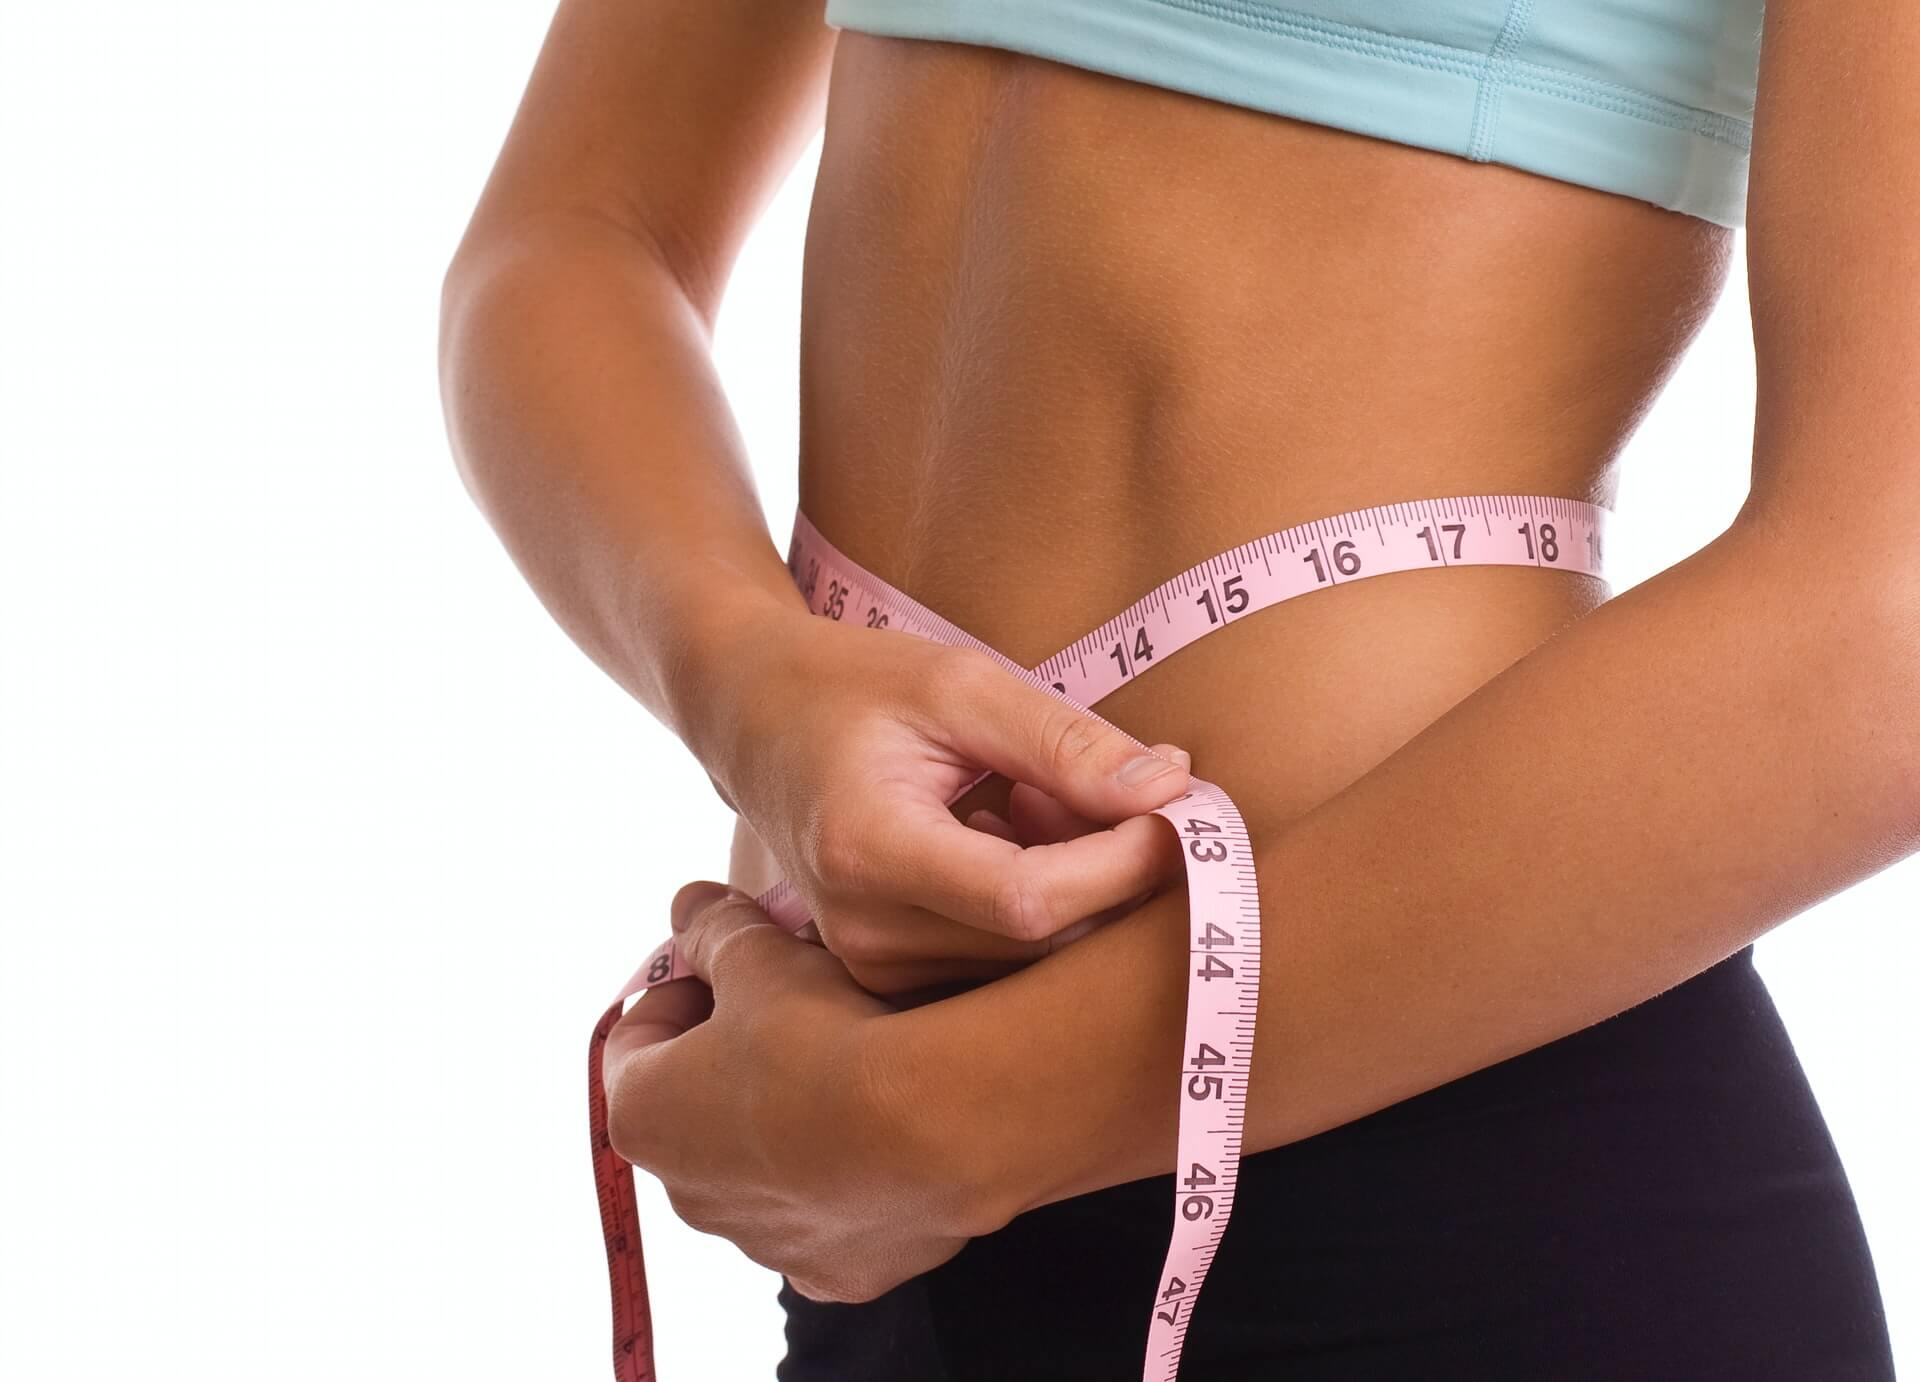 Weight Loss Tips: What Works and What Does Not